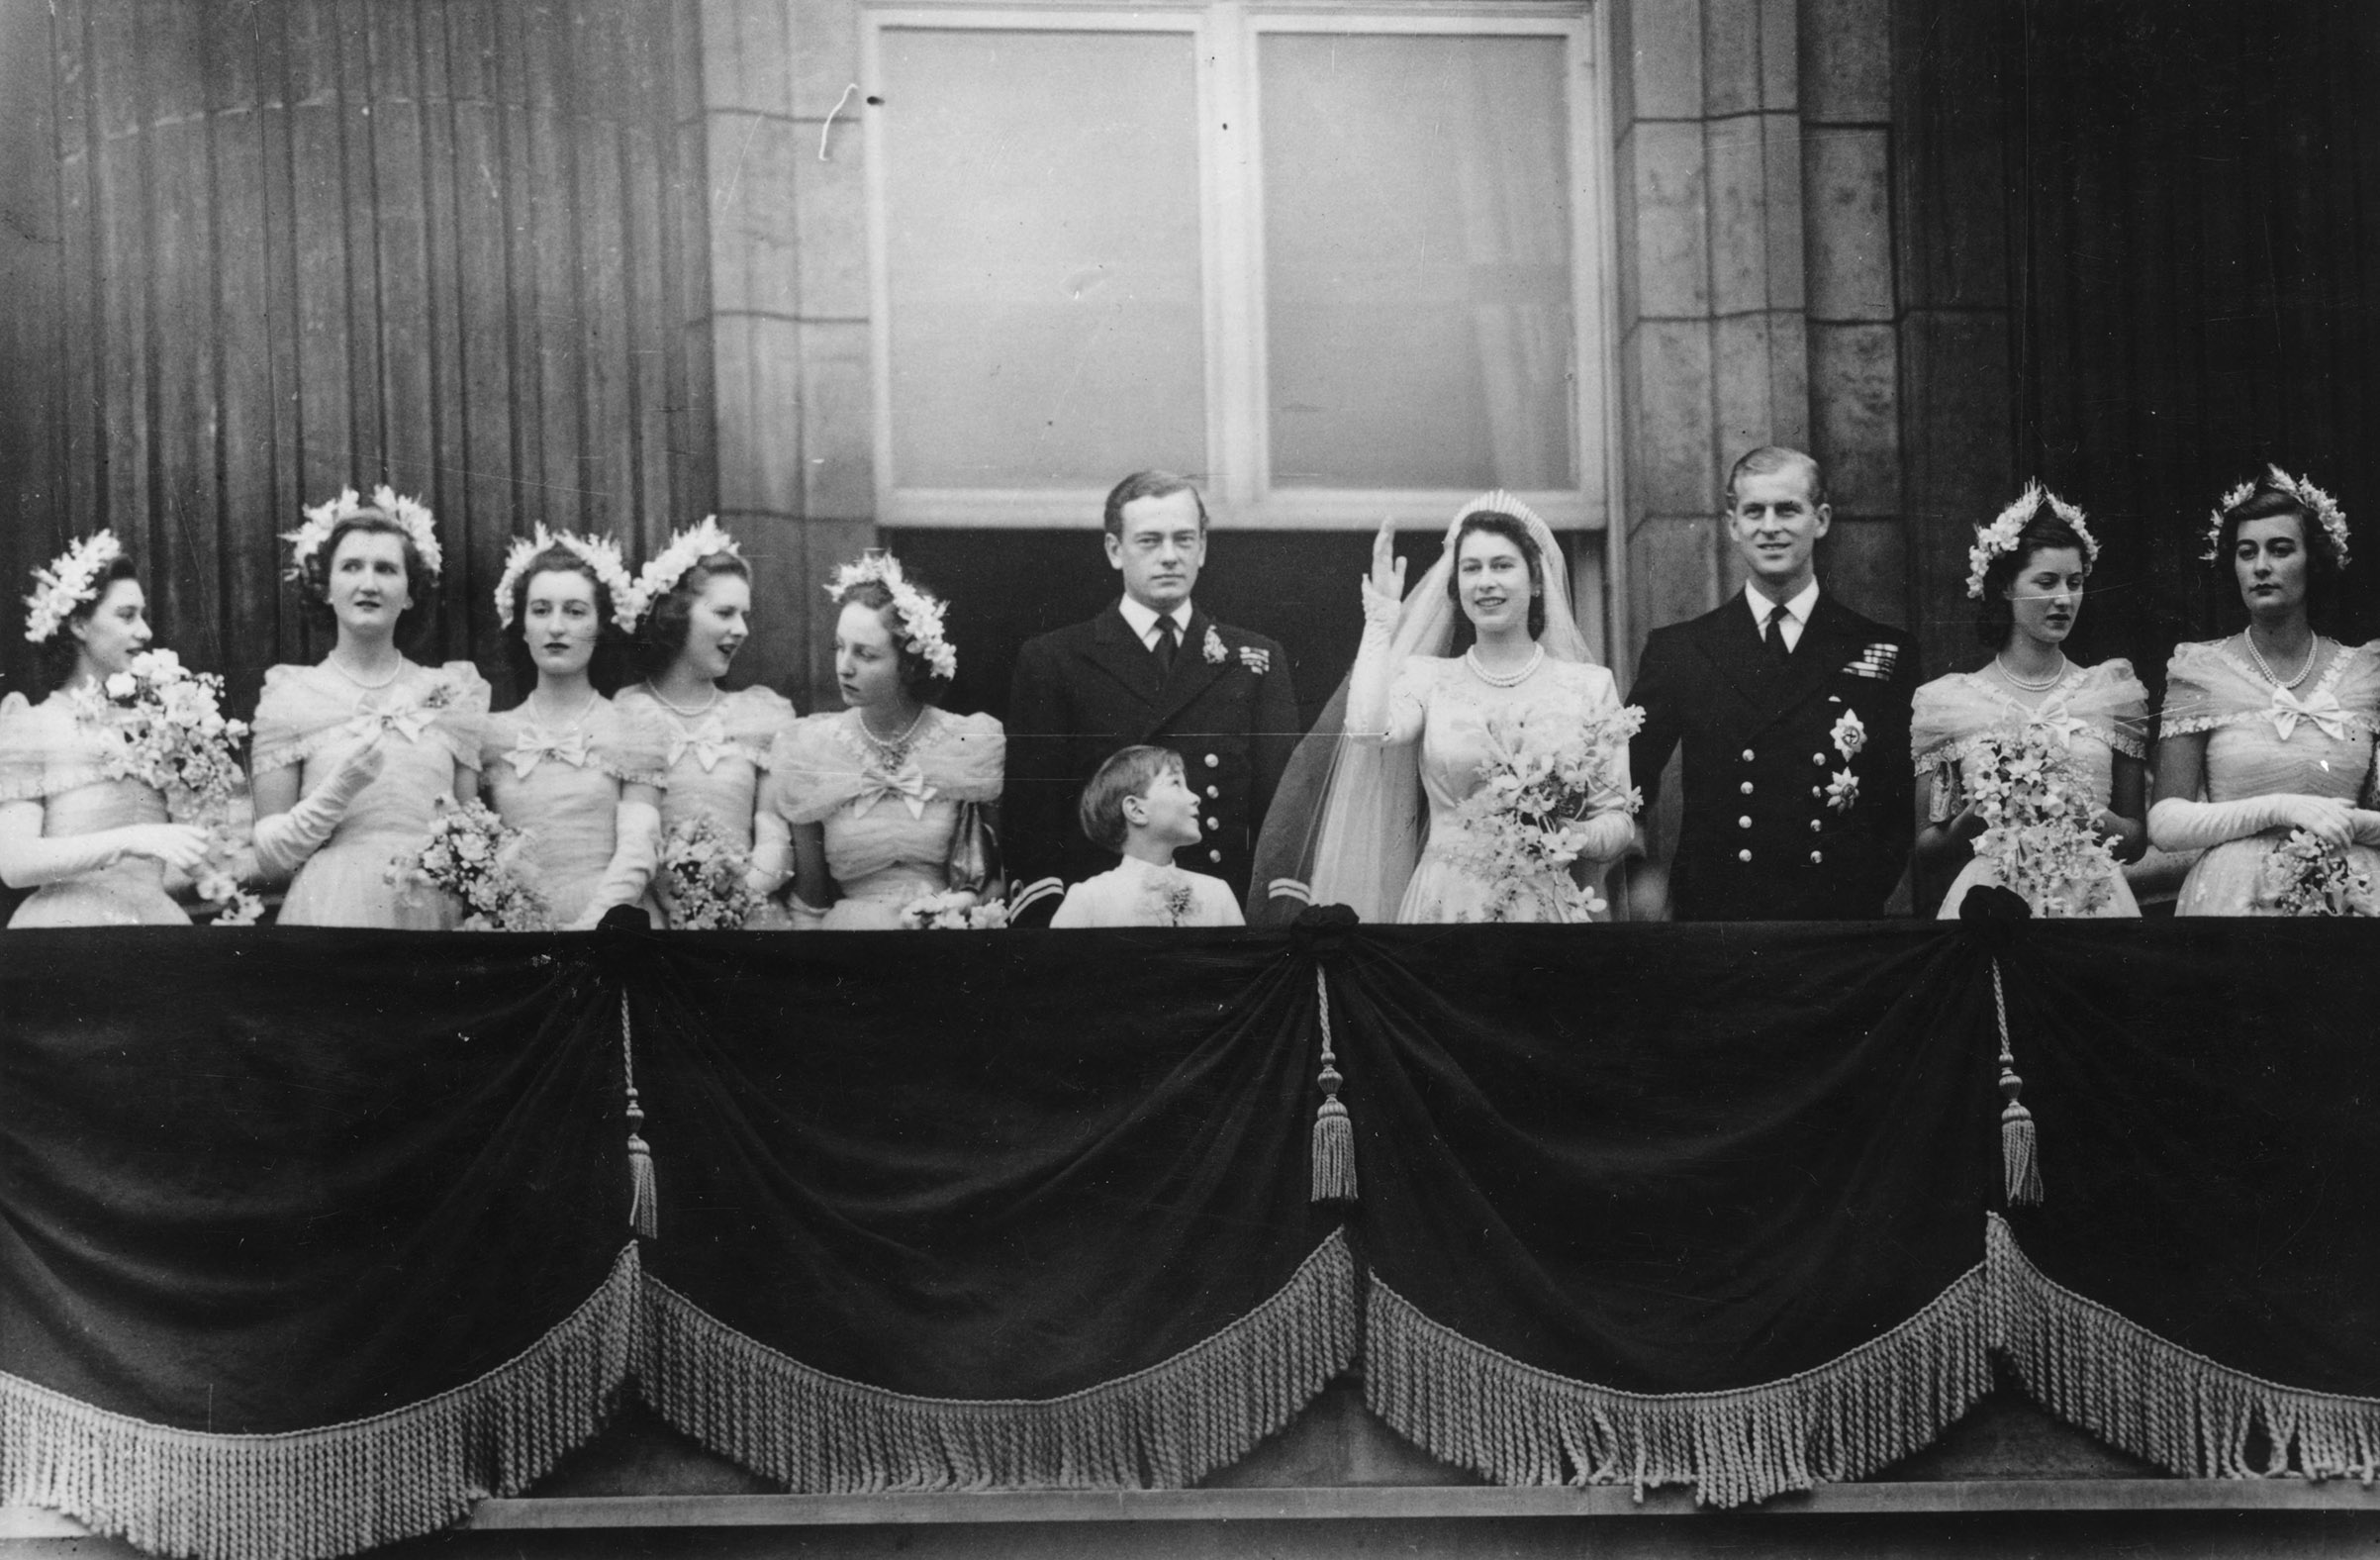 20th November 1947: The royal group on the balcony of Buckingham Palace after returning from the wedding ceremony between Princess Elizabeth and the Duke of Edinburgh at Westminster Abbey. (left to right) Princess Margaret (1930 - 2002), Margaret Elphinstone, Diana Bowes-Lyon, Lady Caroline Montague Douglas-Scott, Lady Elizabeth Lambert, the Marquis of Milford-Haven, Prince William, the bride and groom, Lady Mary Cambridge and Lady Pamela Mountbatten